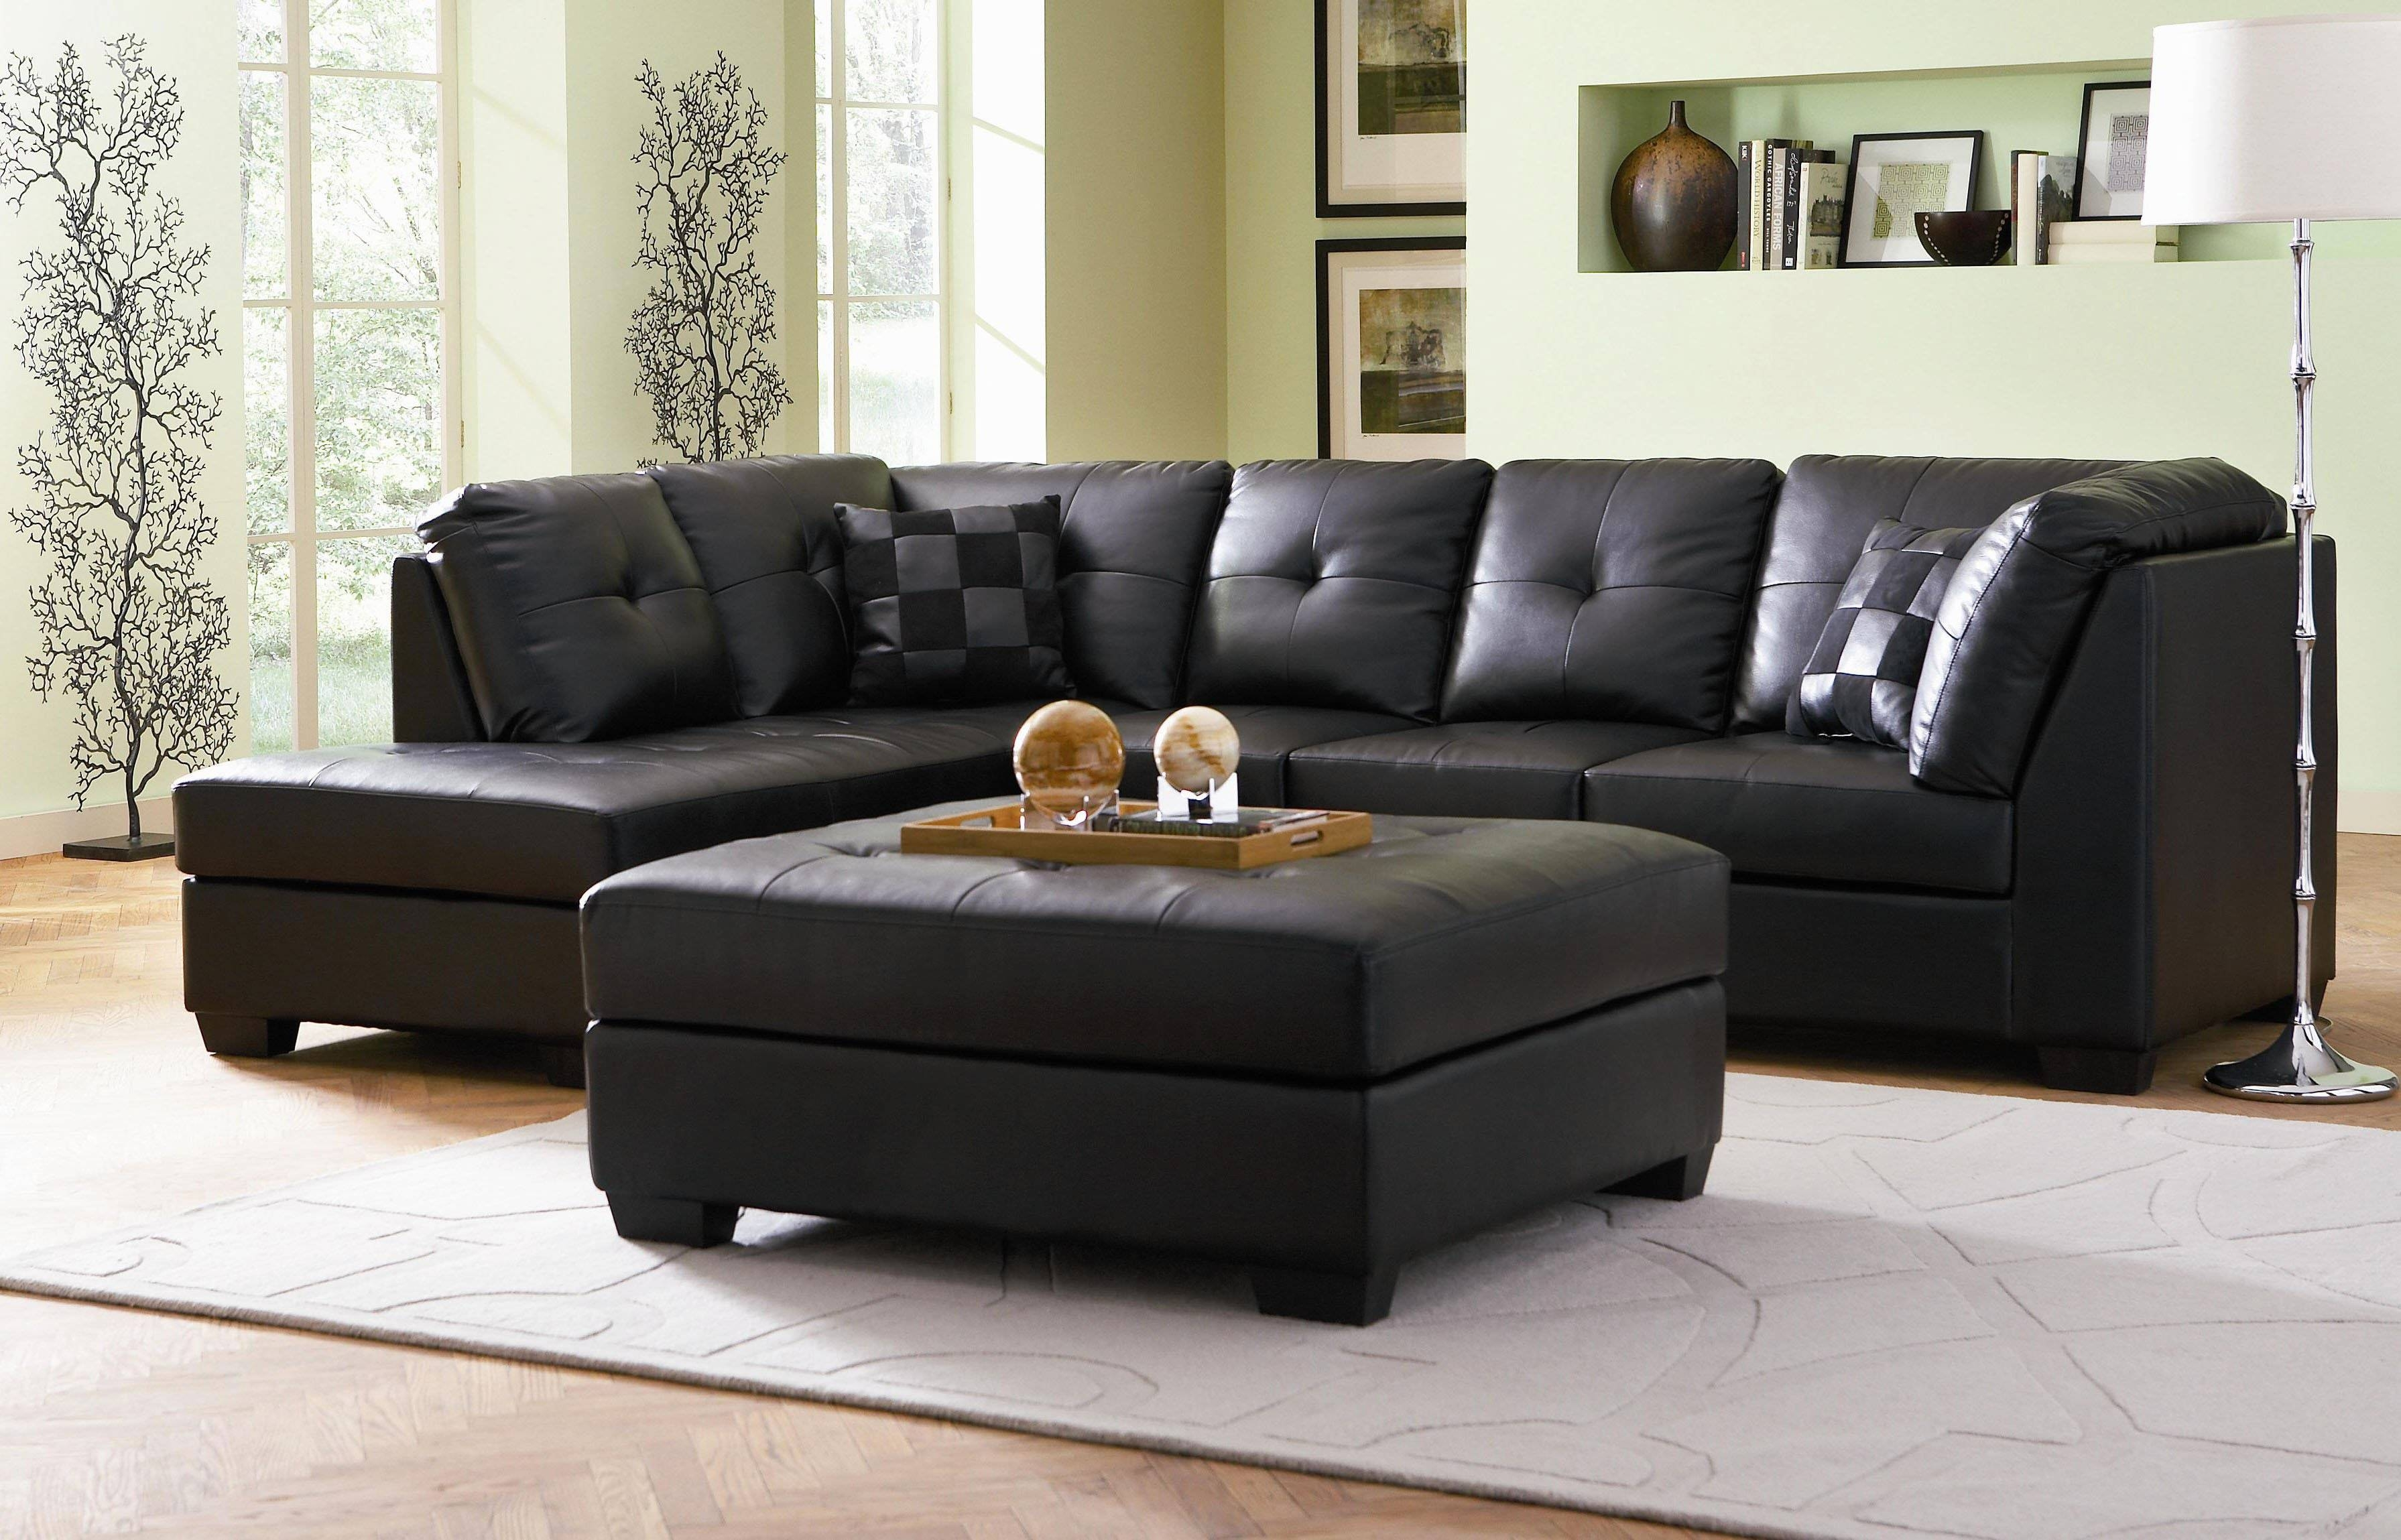 Sofas Center : Furniturersized Sectional Sofas Curved Sofa throughout Sectional Sofa With Oversized Ottoman (Image 24 of 30)